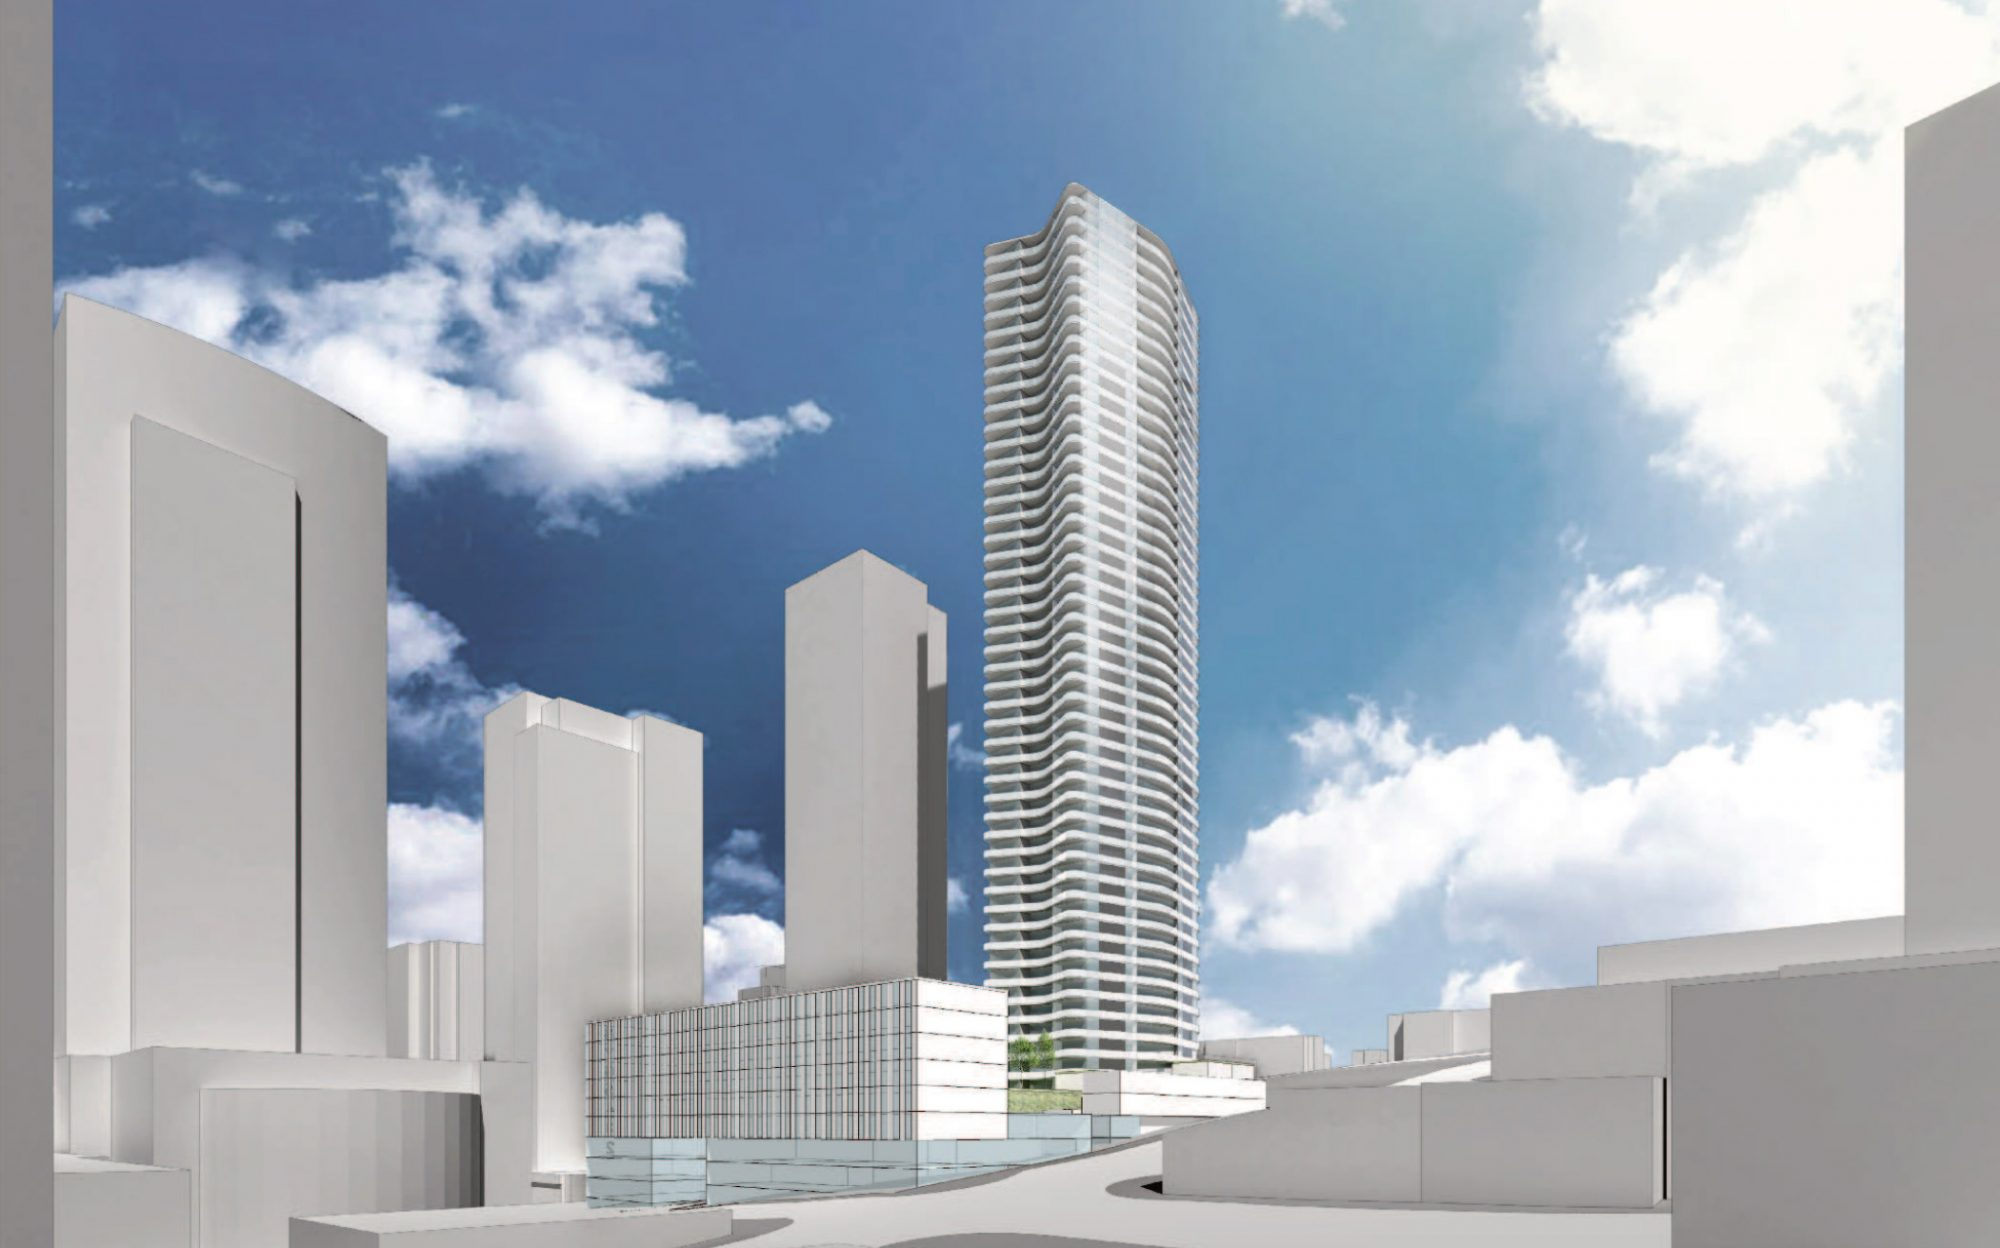 45-storey tower and hotel proposed for downtown New Westminster